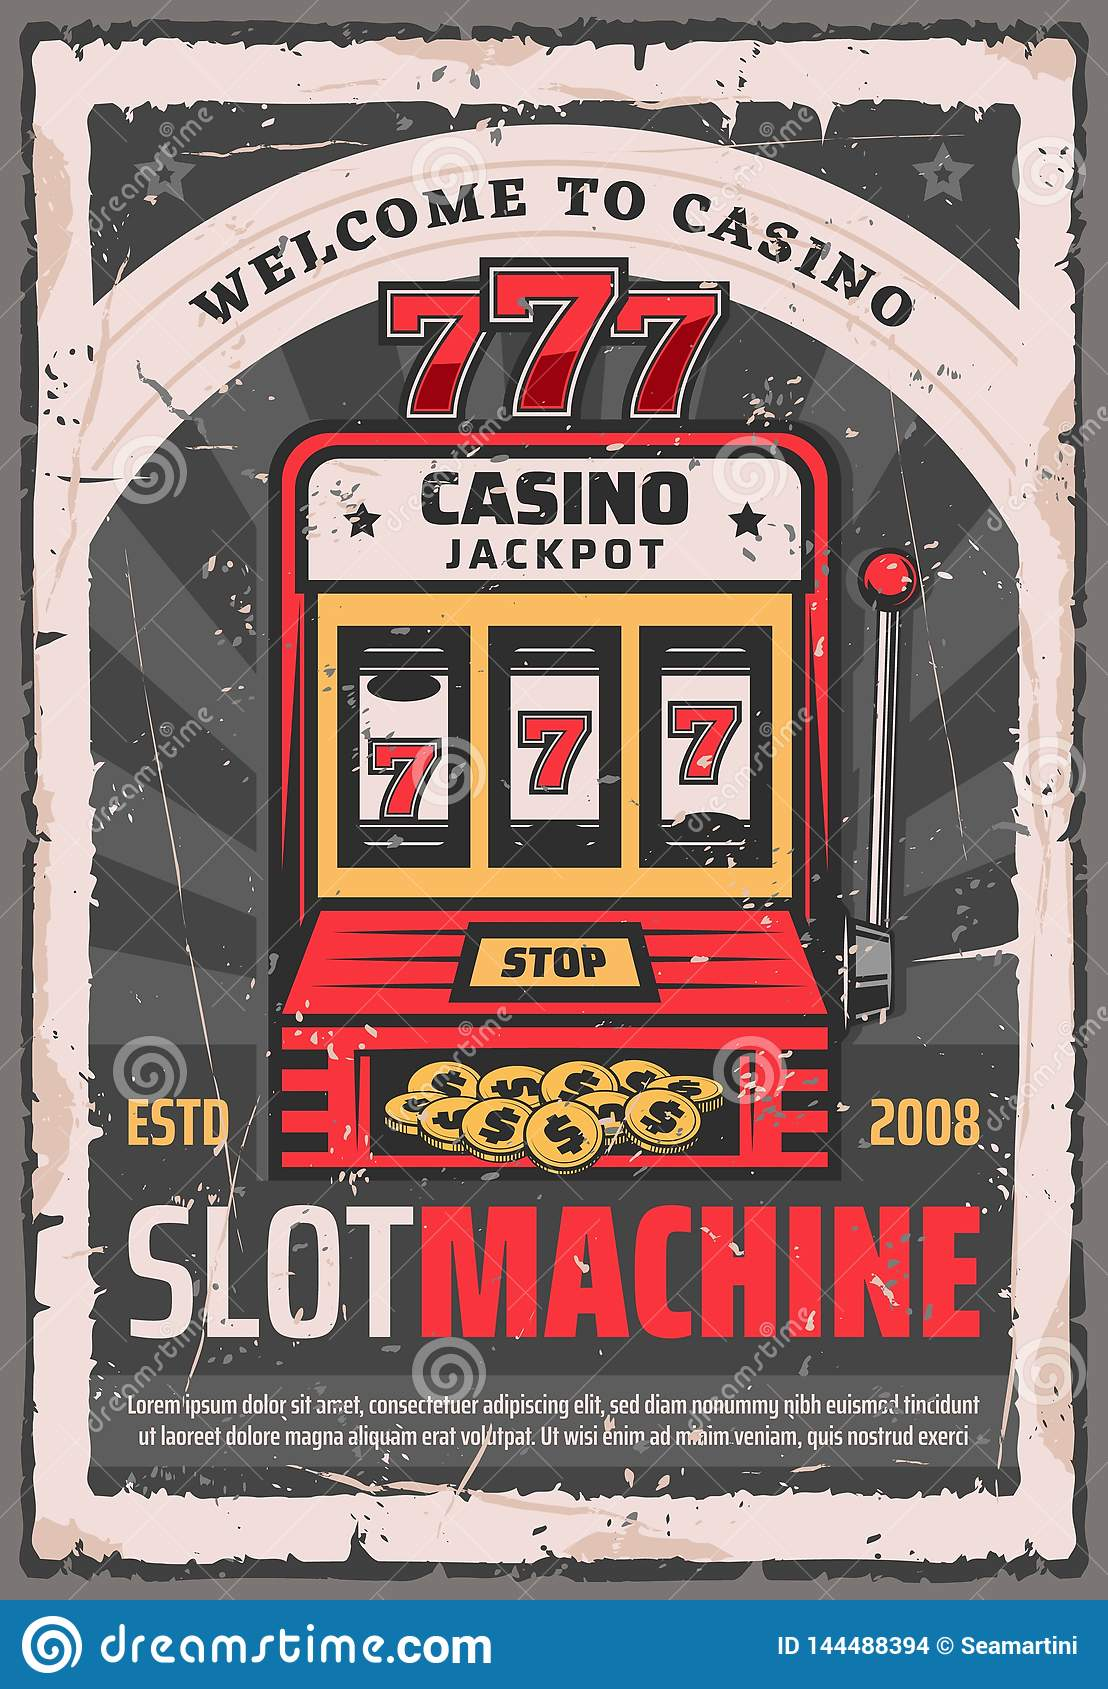 Mobile Casinos for 173016